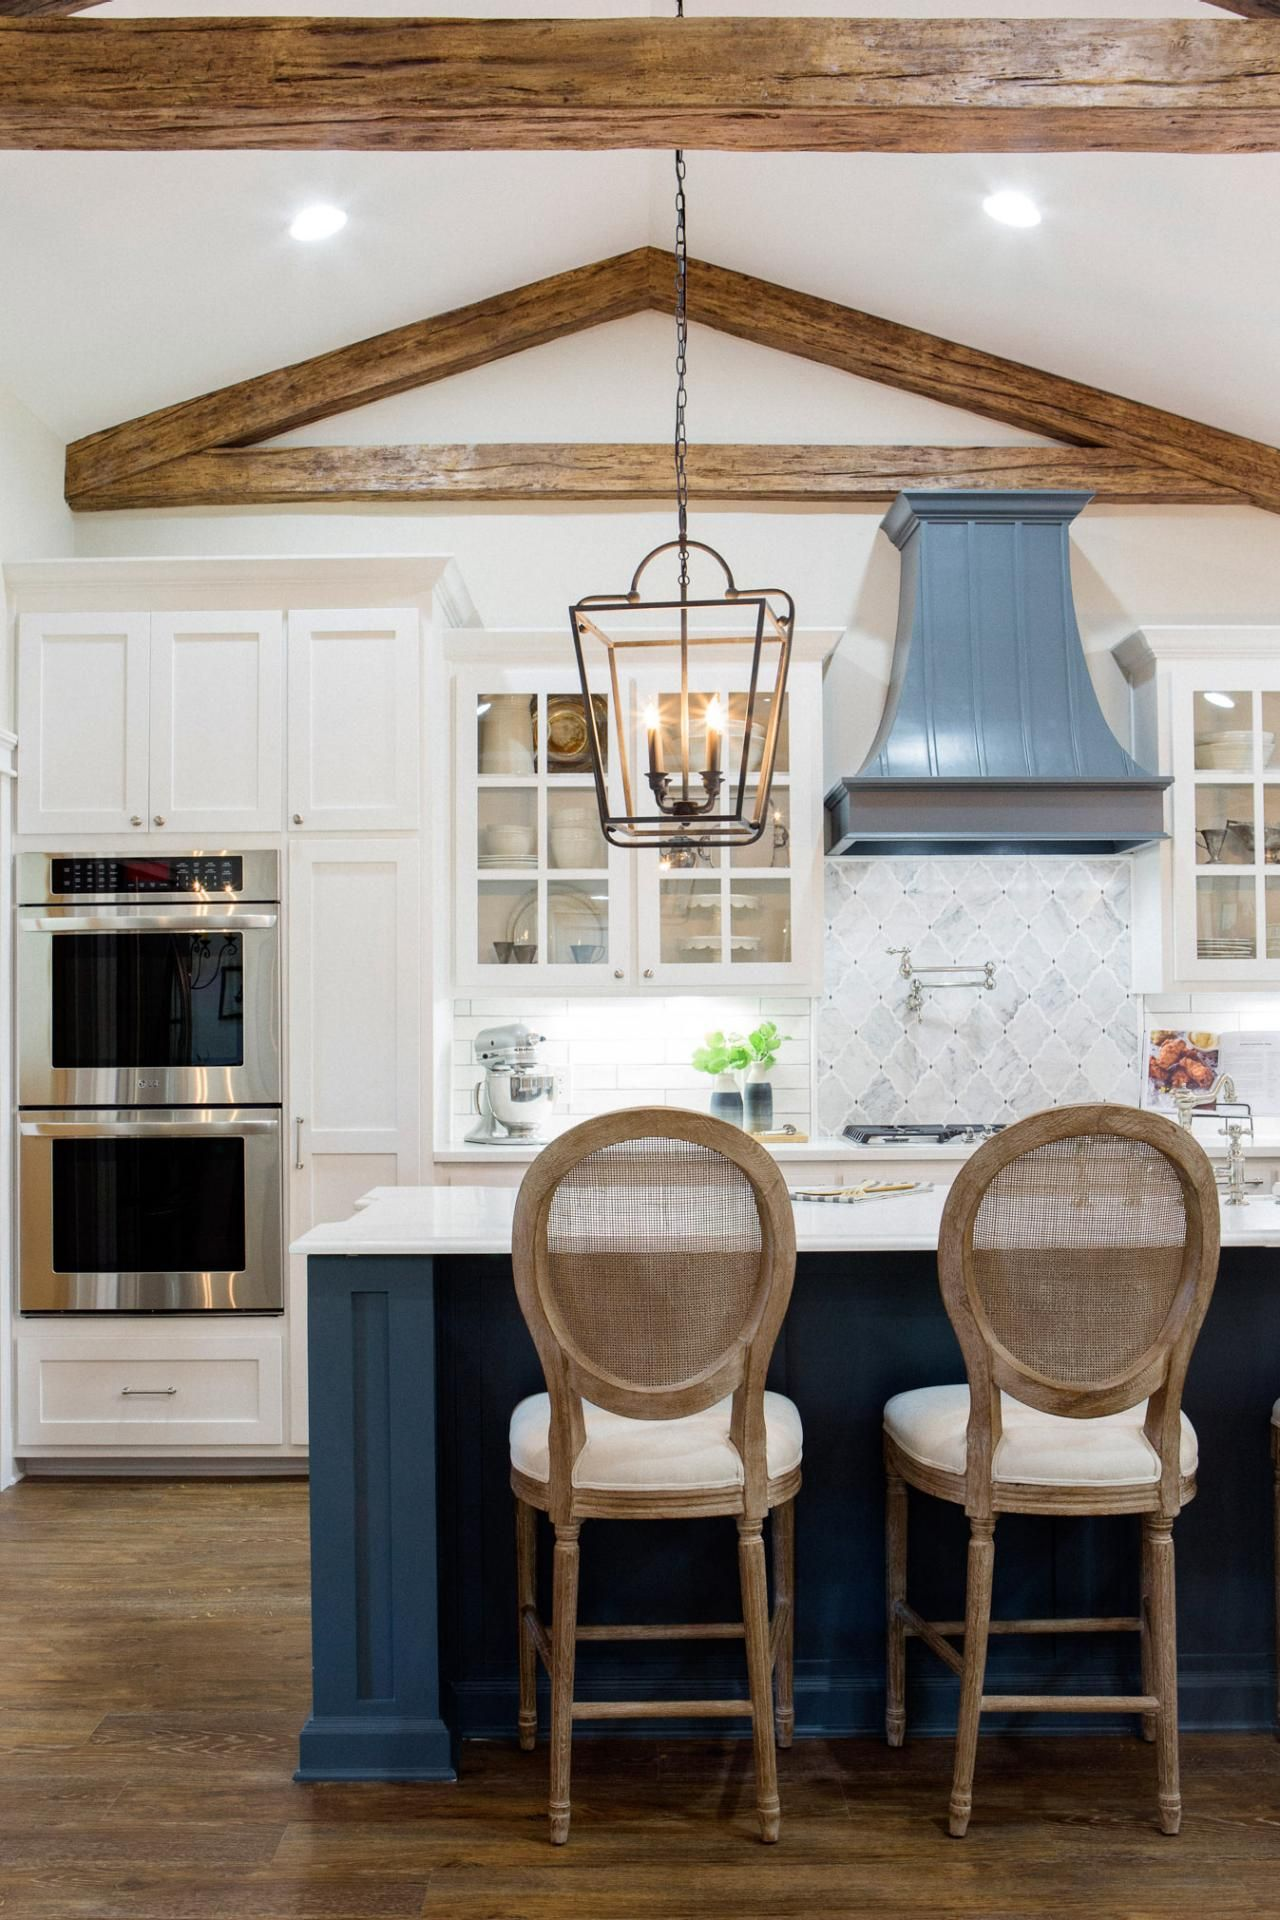 15 Kitchen Island Ideas to Inspire Your Remodel | Hgtv, Joanna ...